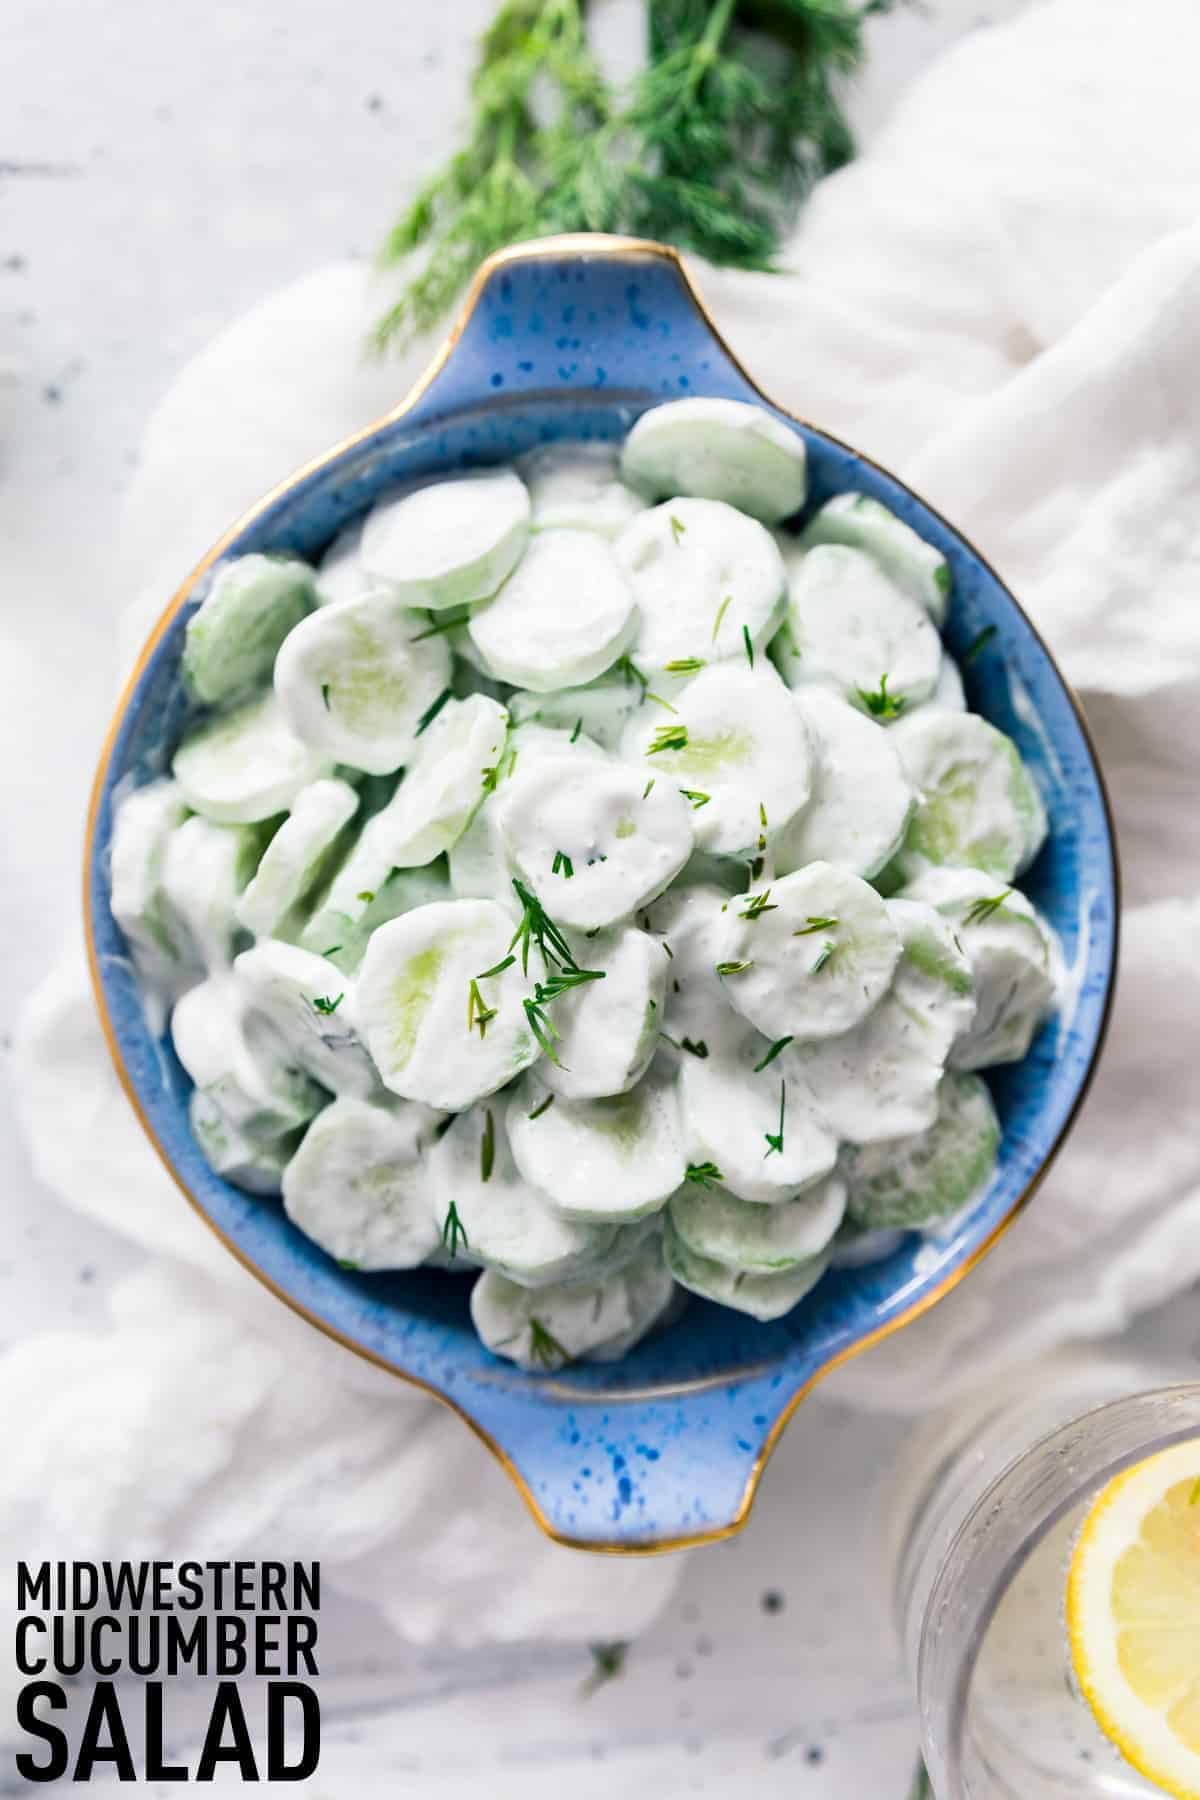 Midwestern Creamy Cucumber and Vinegar Salad made with fresh cucumbers, sour cream, vinegar, and fresh herbs, a summer stable for every picnic and cookout!